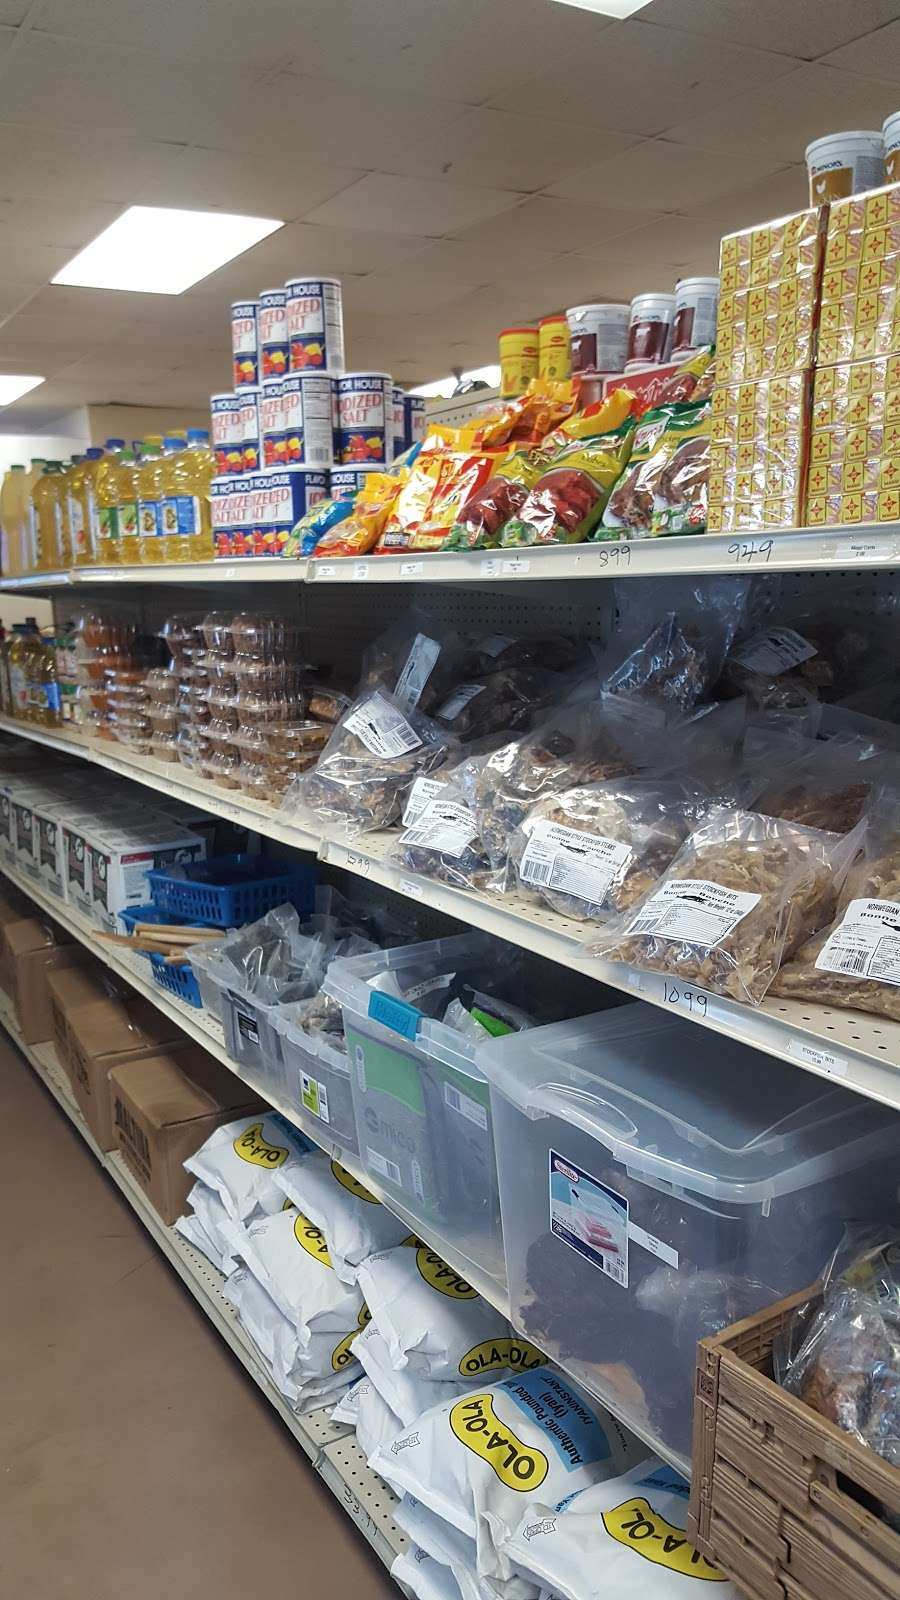 GMF Enterprises African Groceries - store  | Photo 4 of 10 | Address: 1712 N Frazier St Ste 106, Conroe, TX 77301, USA | Phone: (312) 622-4151